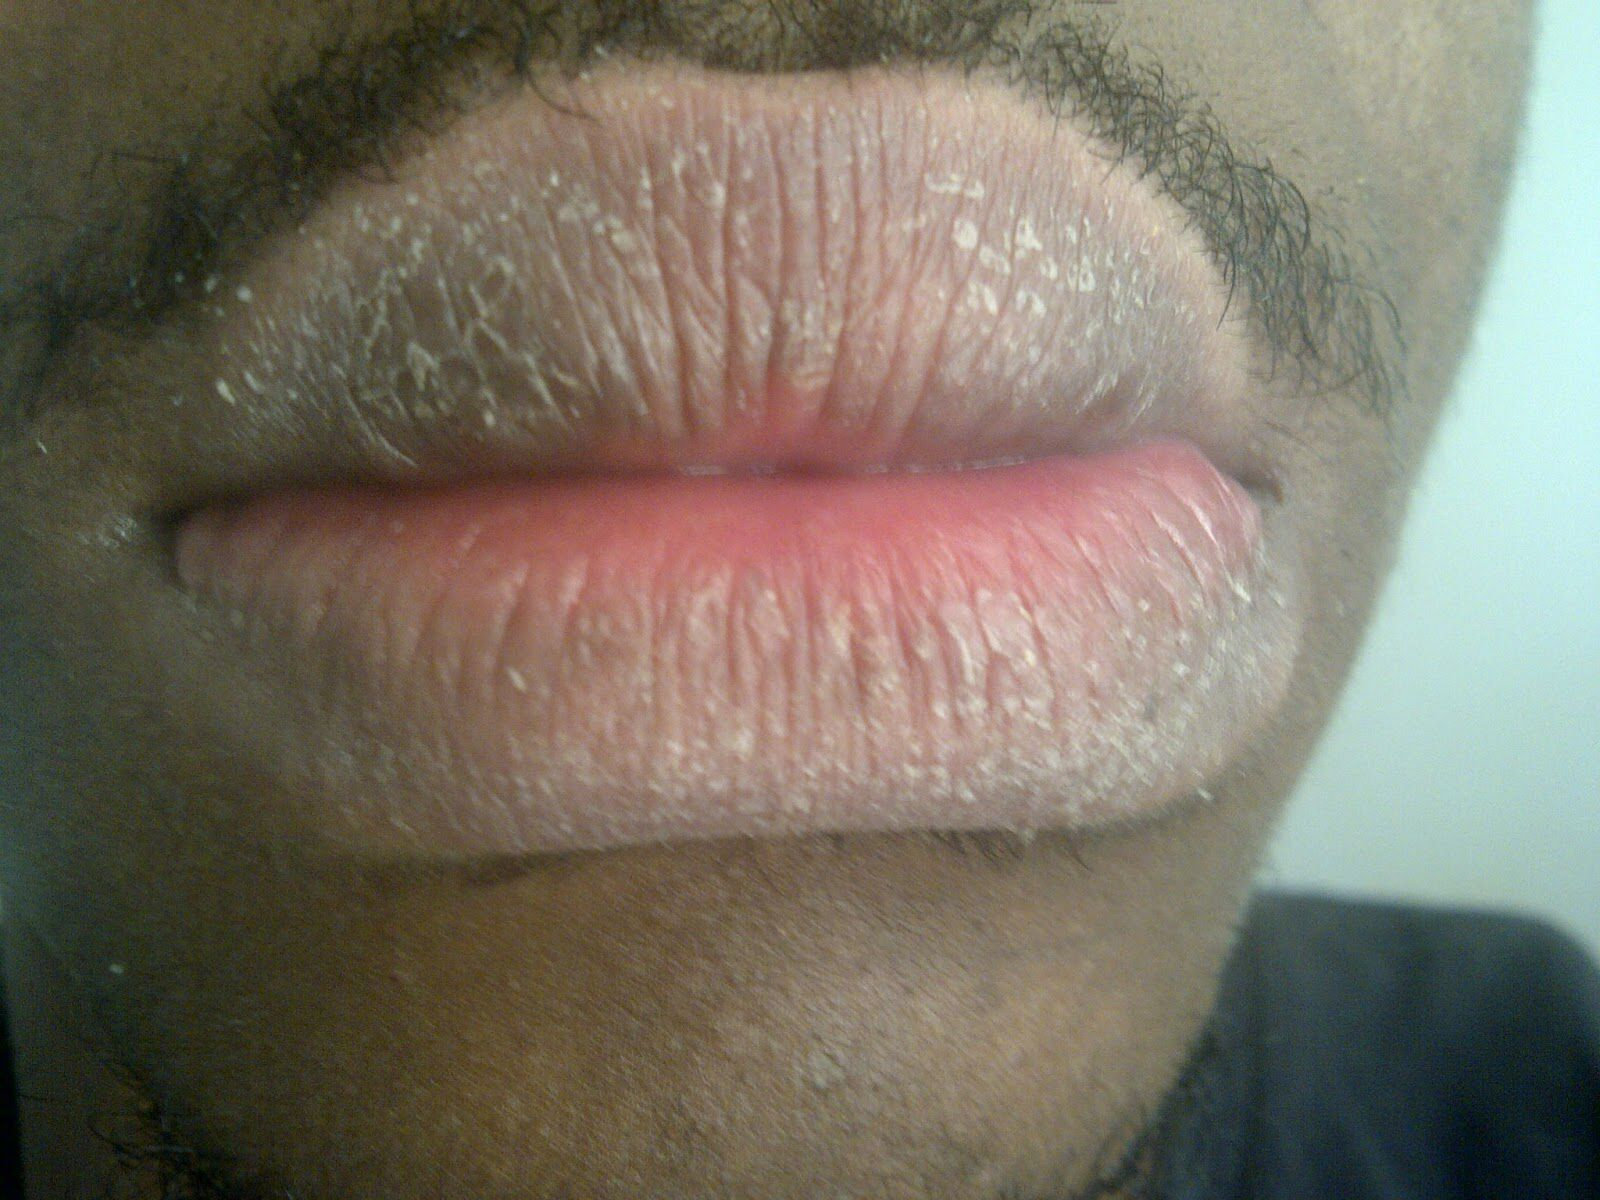 Chapped Lips Non White Person Note How Skin Breaks Up And Colors